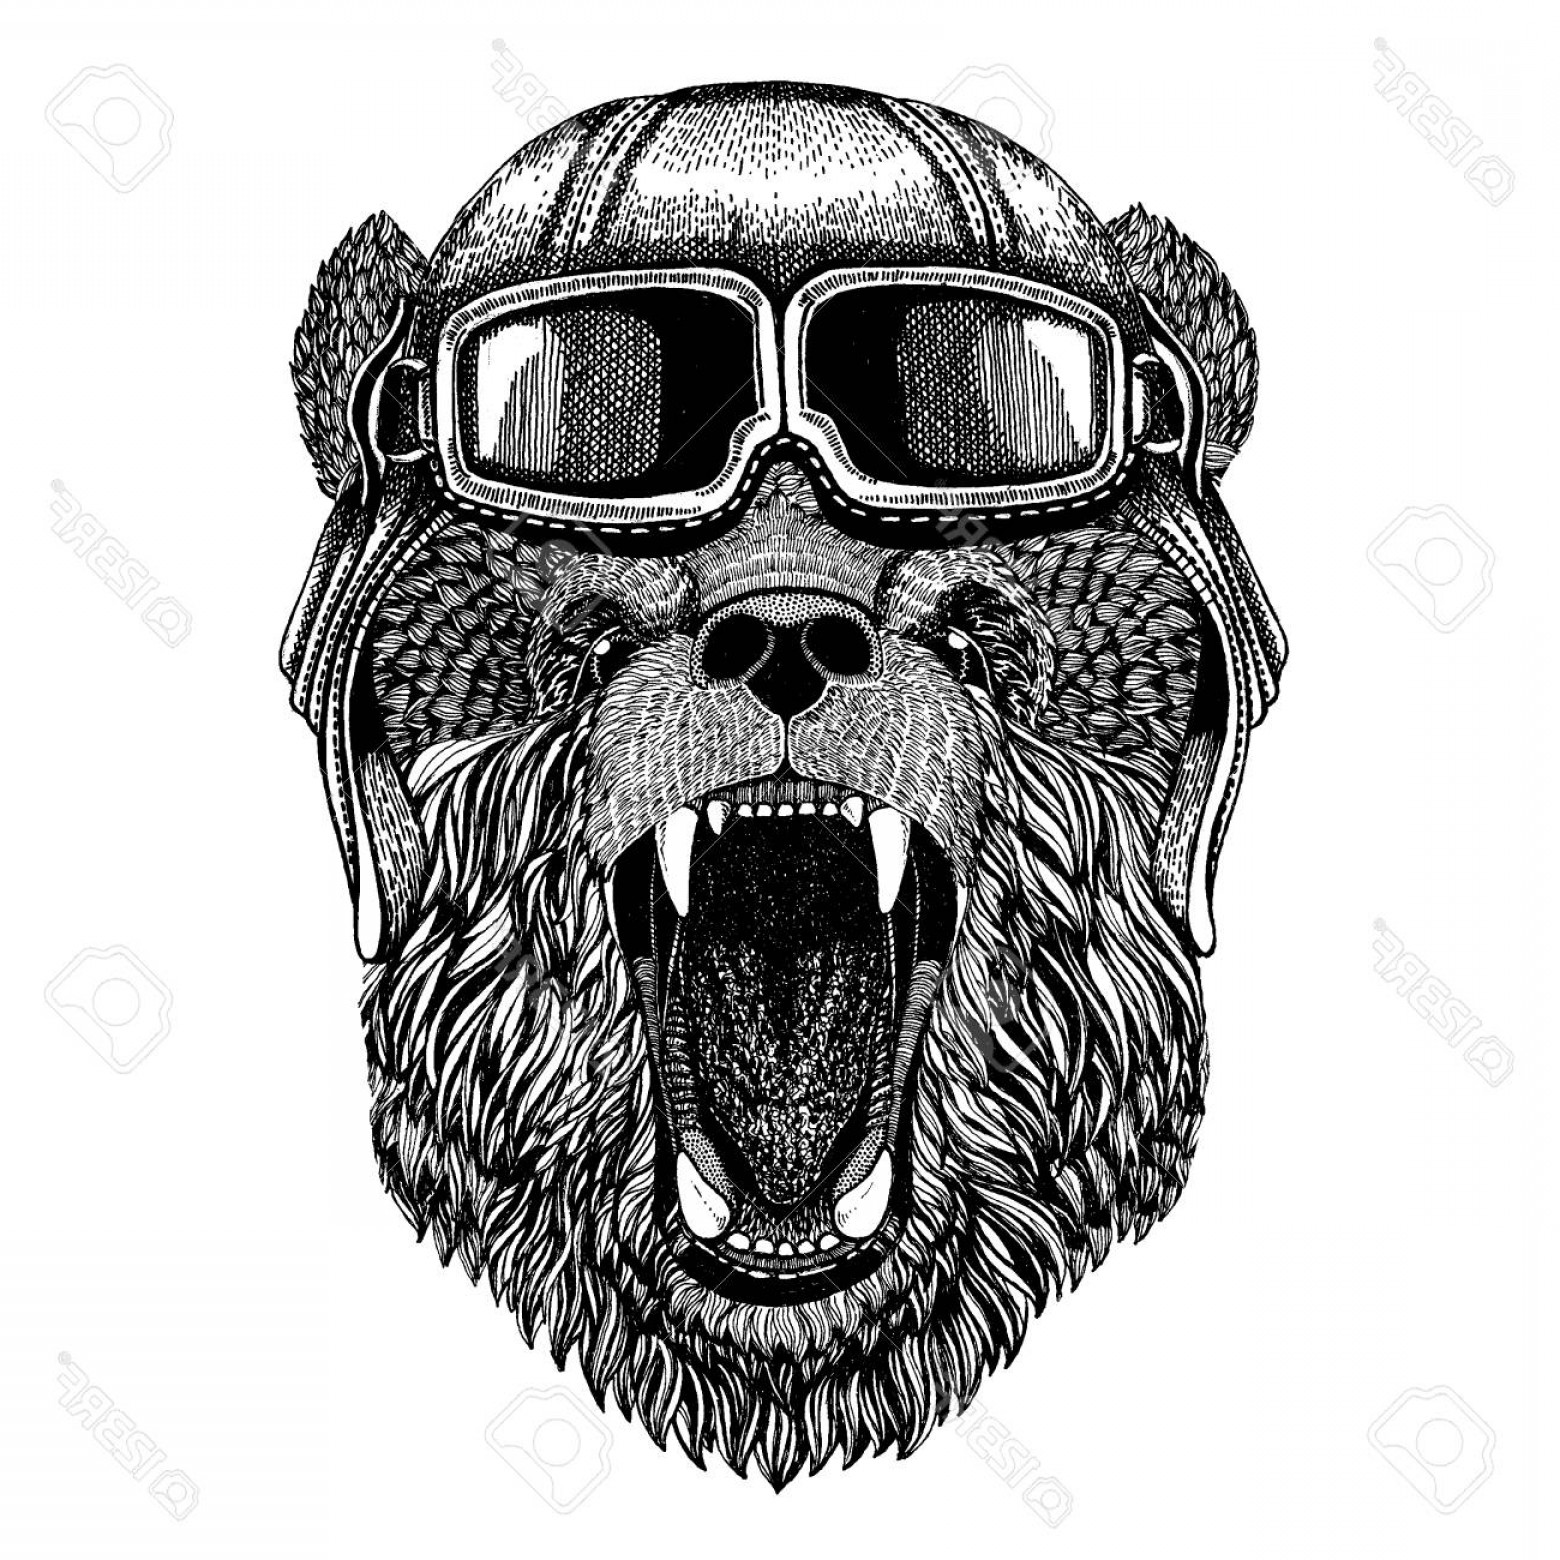 Aviator Vector Ink Drawings: Photostock Vector Animal Wearing Aviator Helmet With Glasses Vector Picture Bear Hand Drawn Picture For Tattoo T Shirt